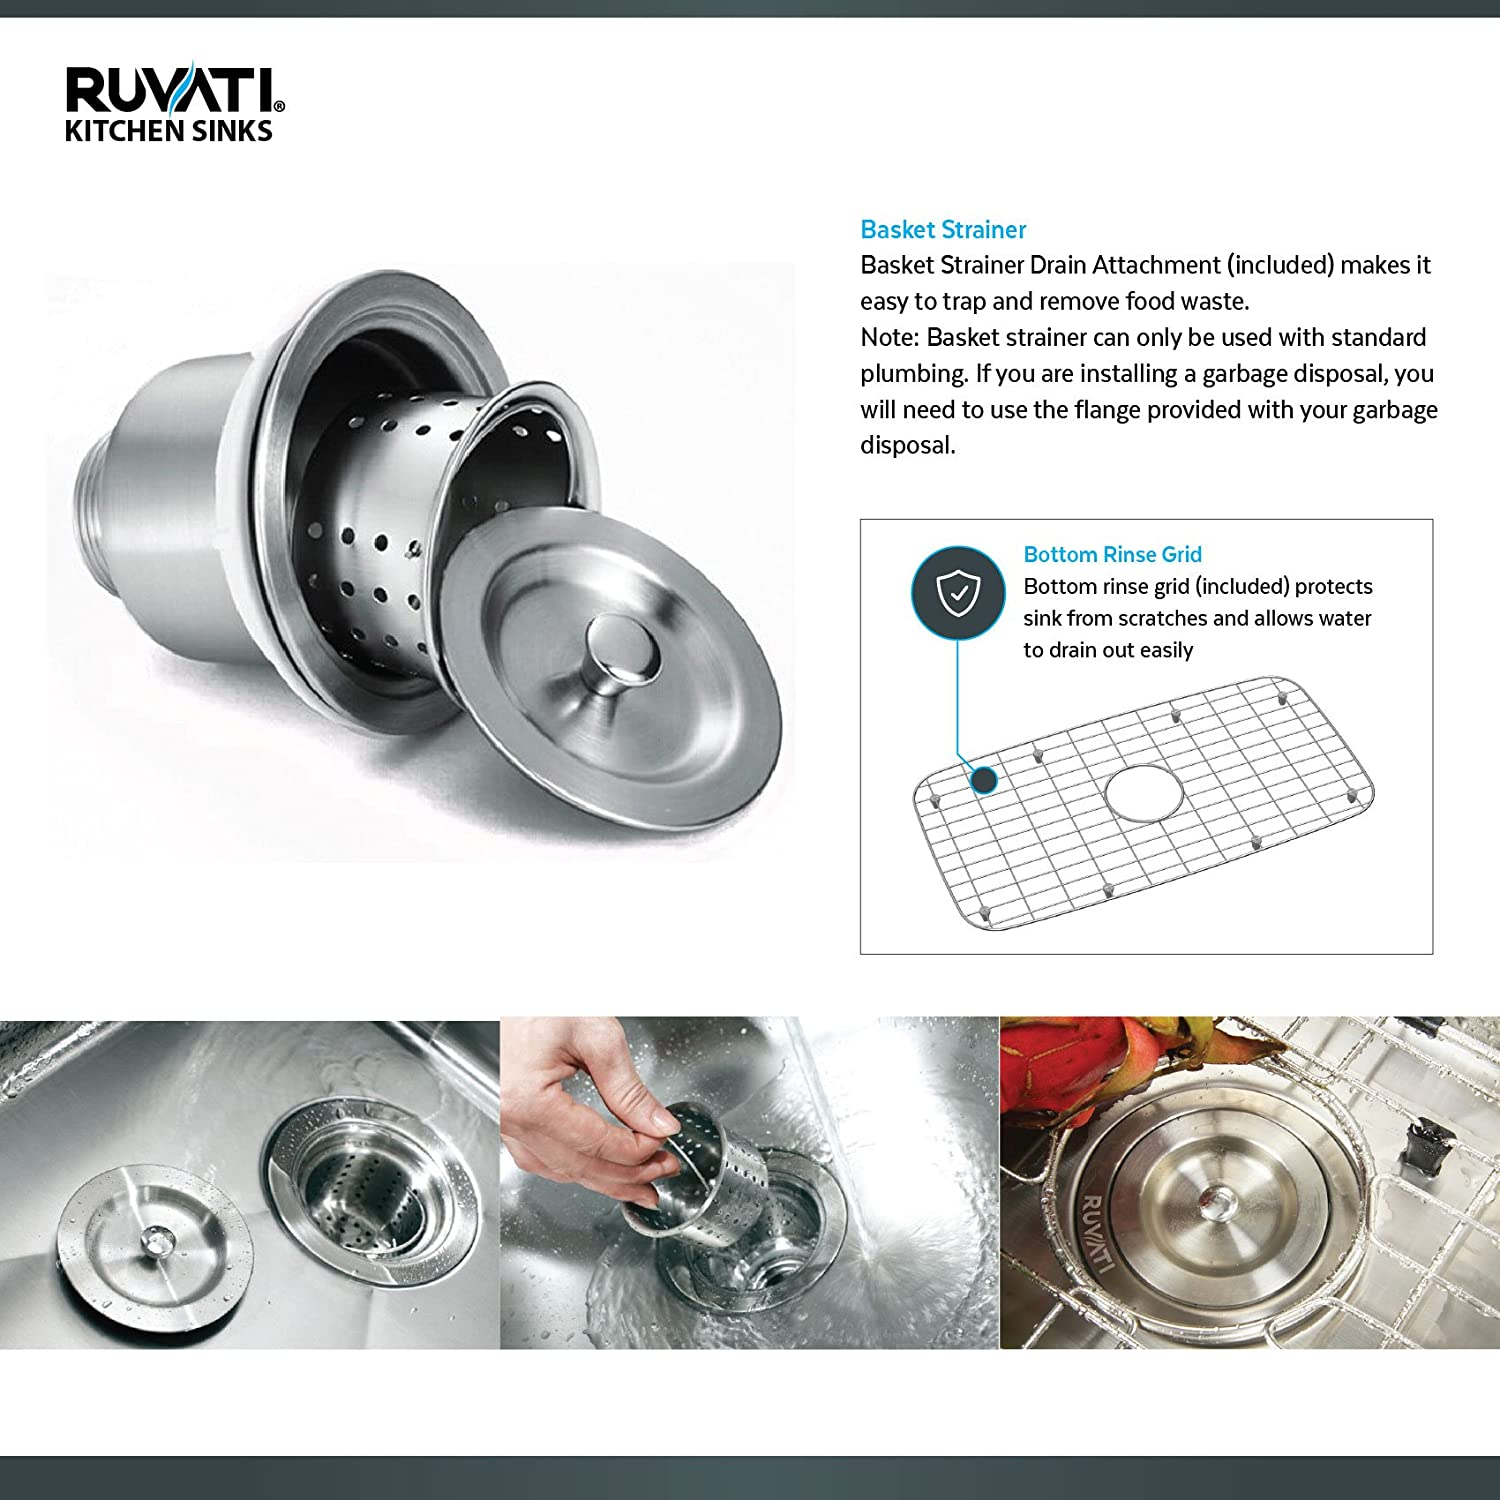 Ruvati Rvh7100 Undermount 16 Gauge 23 Kitchen Sink Single Bowl Stainless Steel Amazon Com